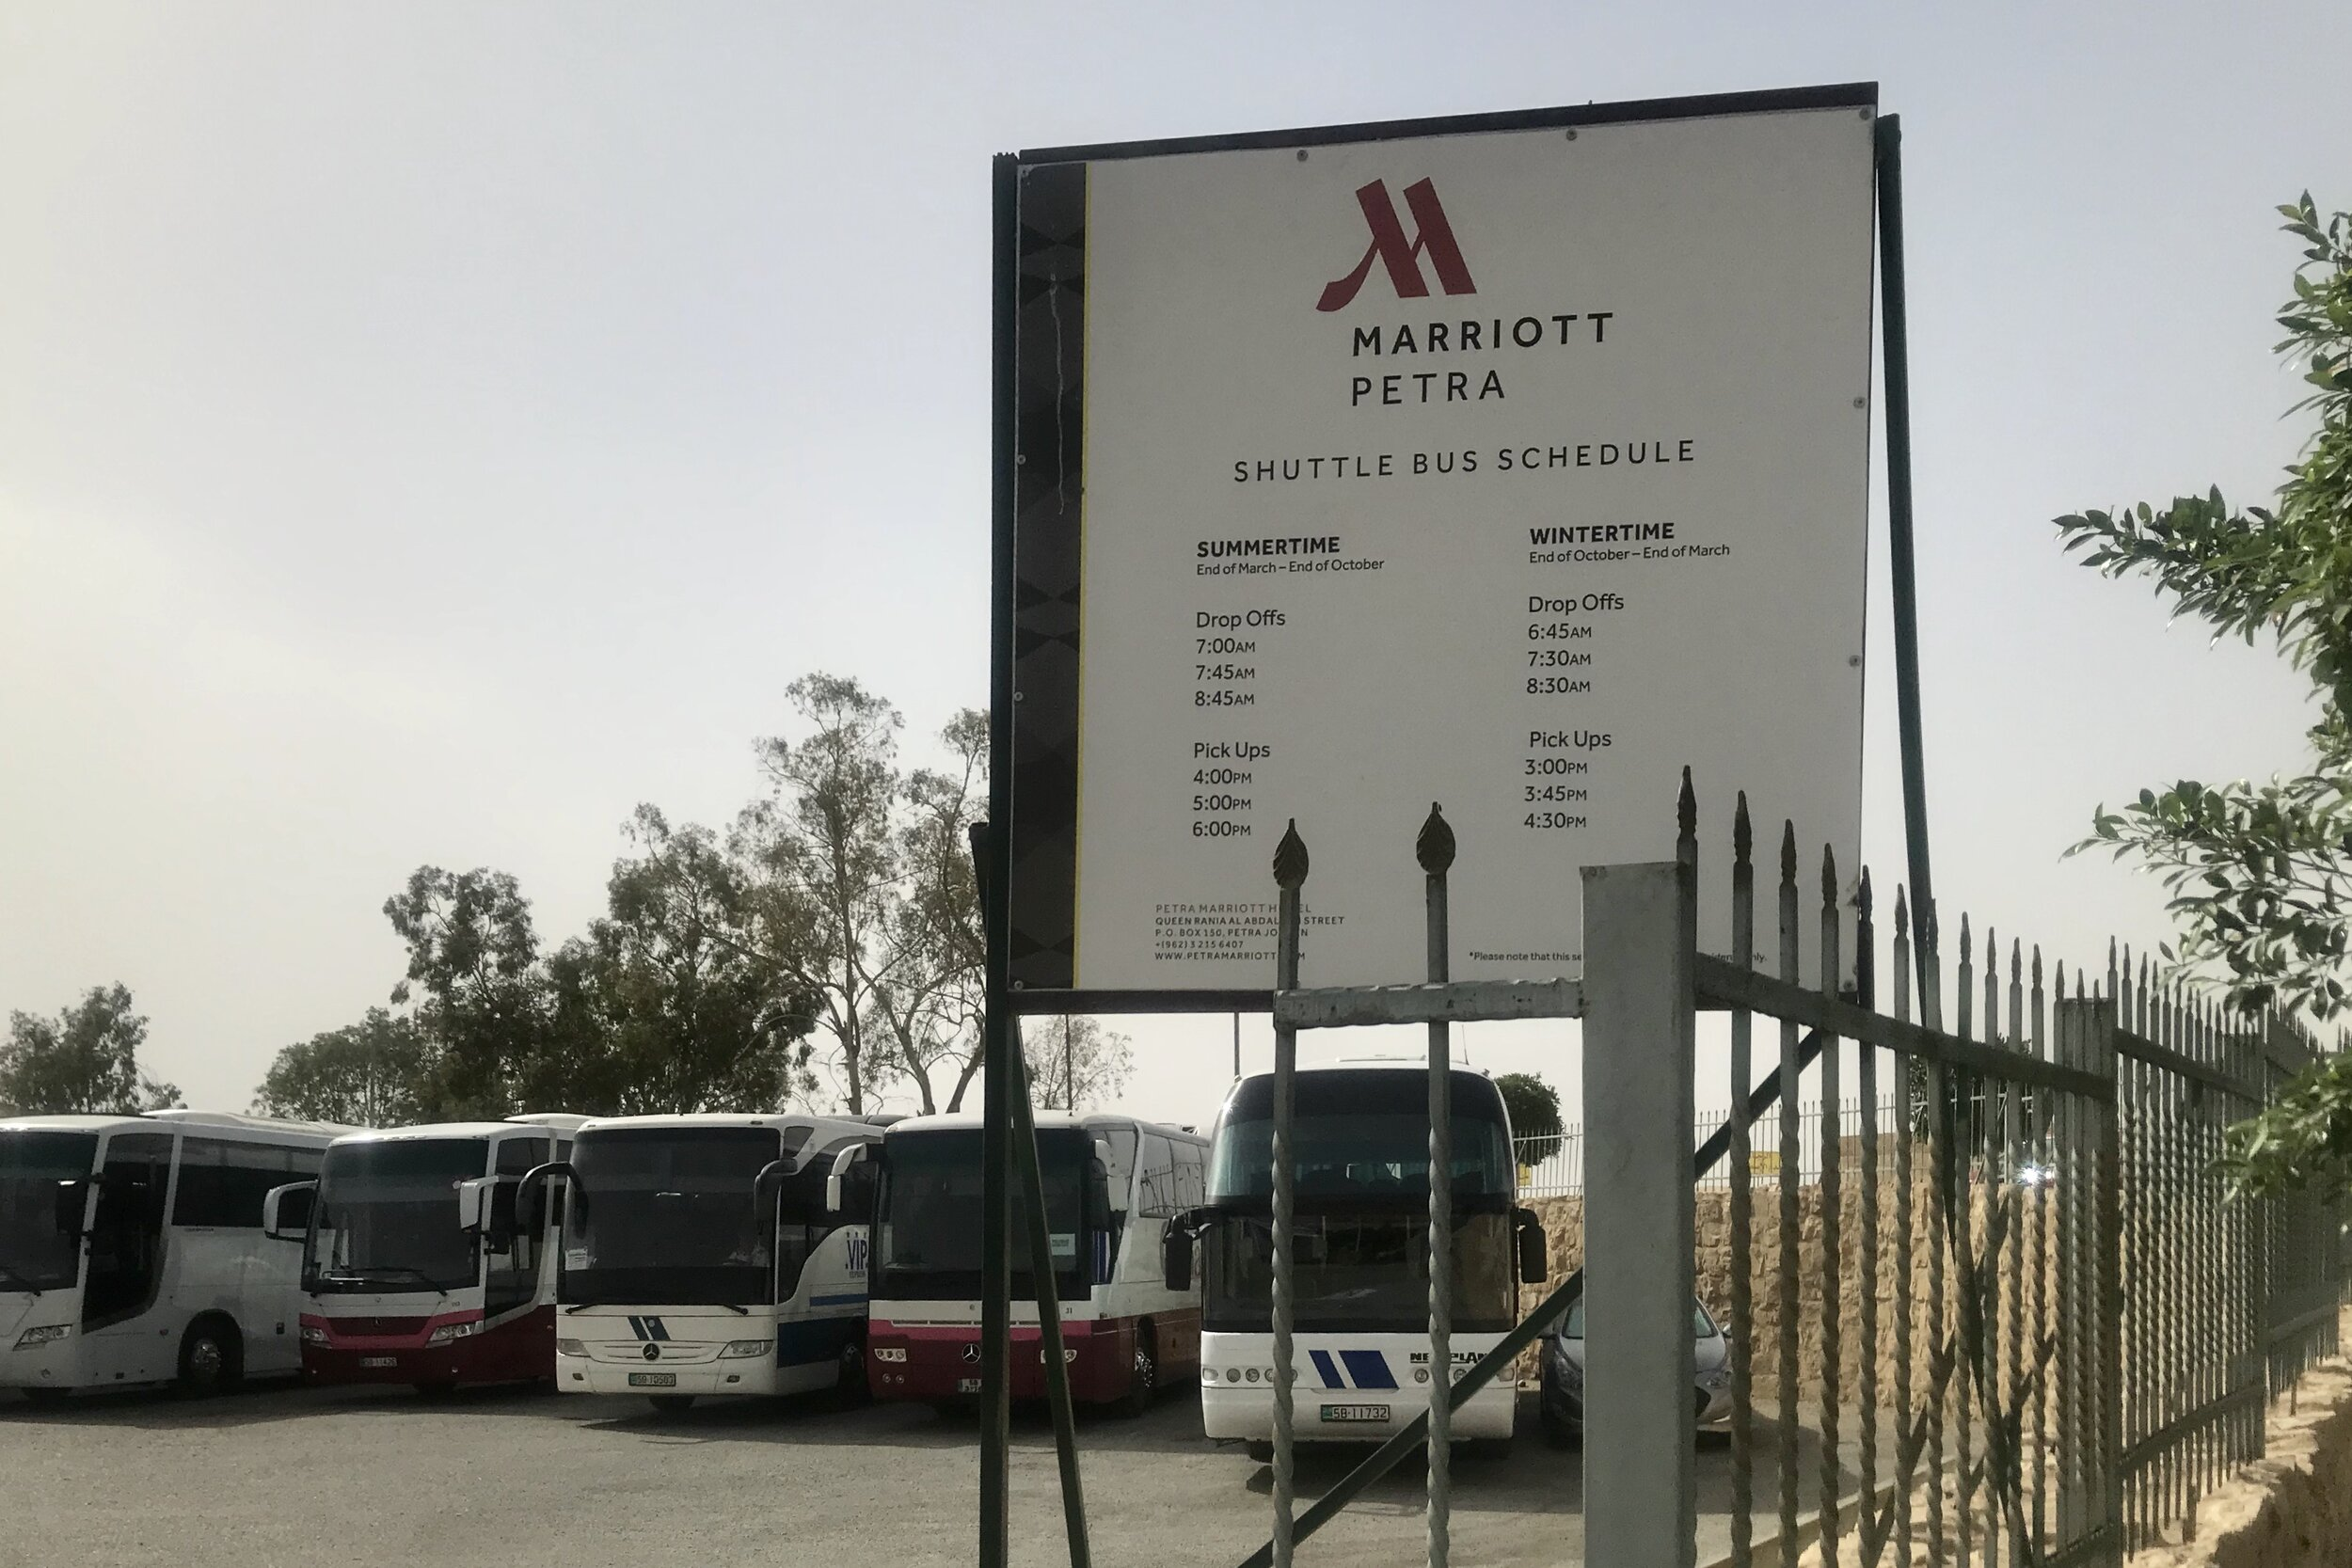 Marriott Petra – Shuttle bus schedule